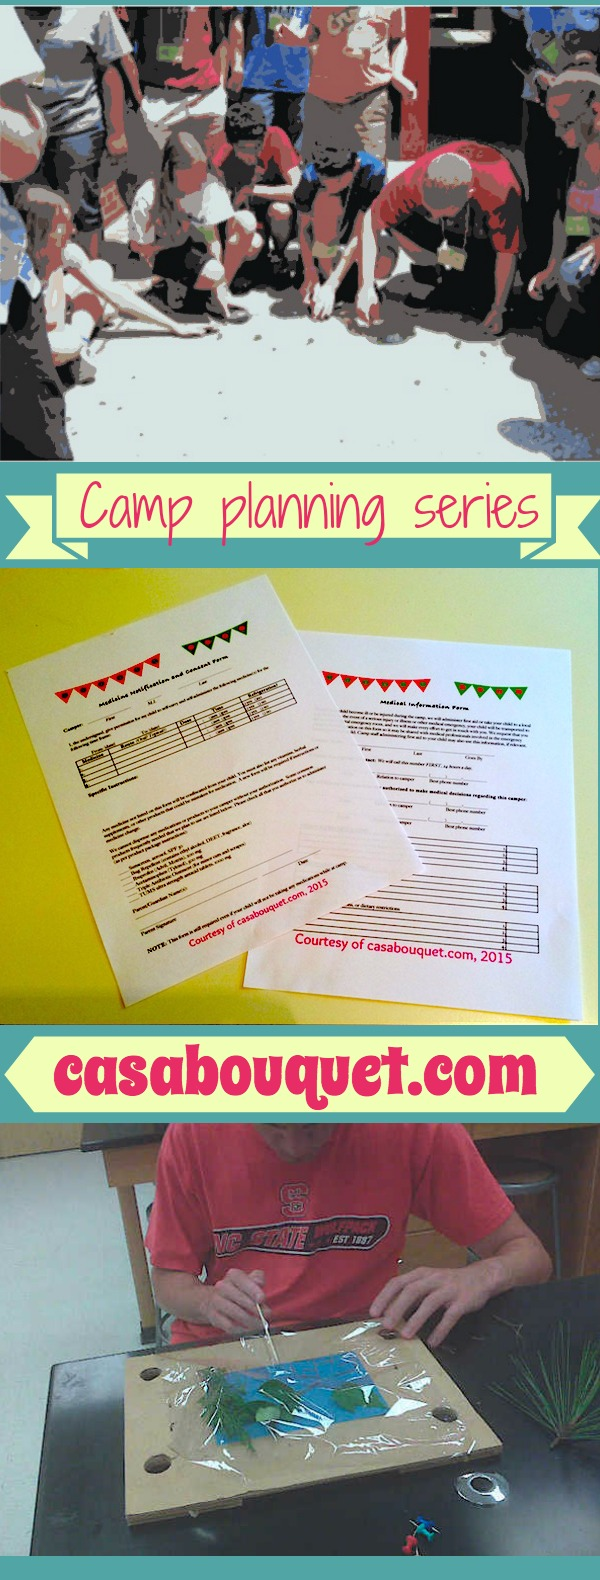 Camp planning posts for parents, educators, and volunteers. Download free forms, and find tips for movies, closing ceremony, and safety. Resource links!